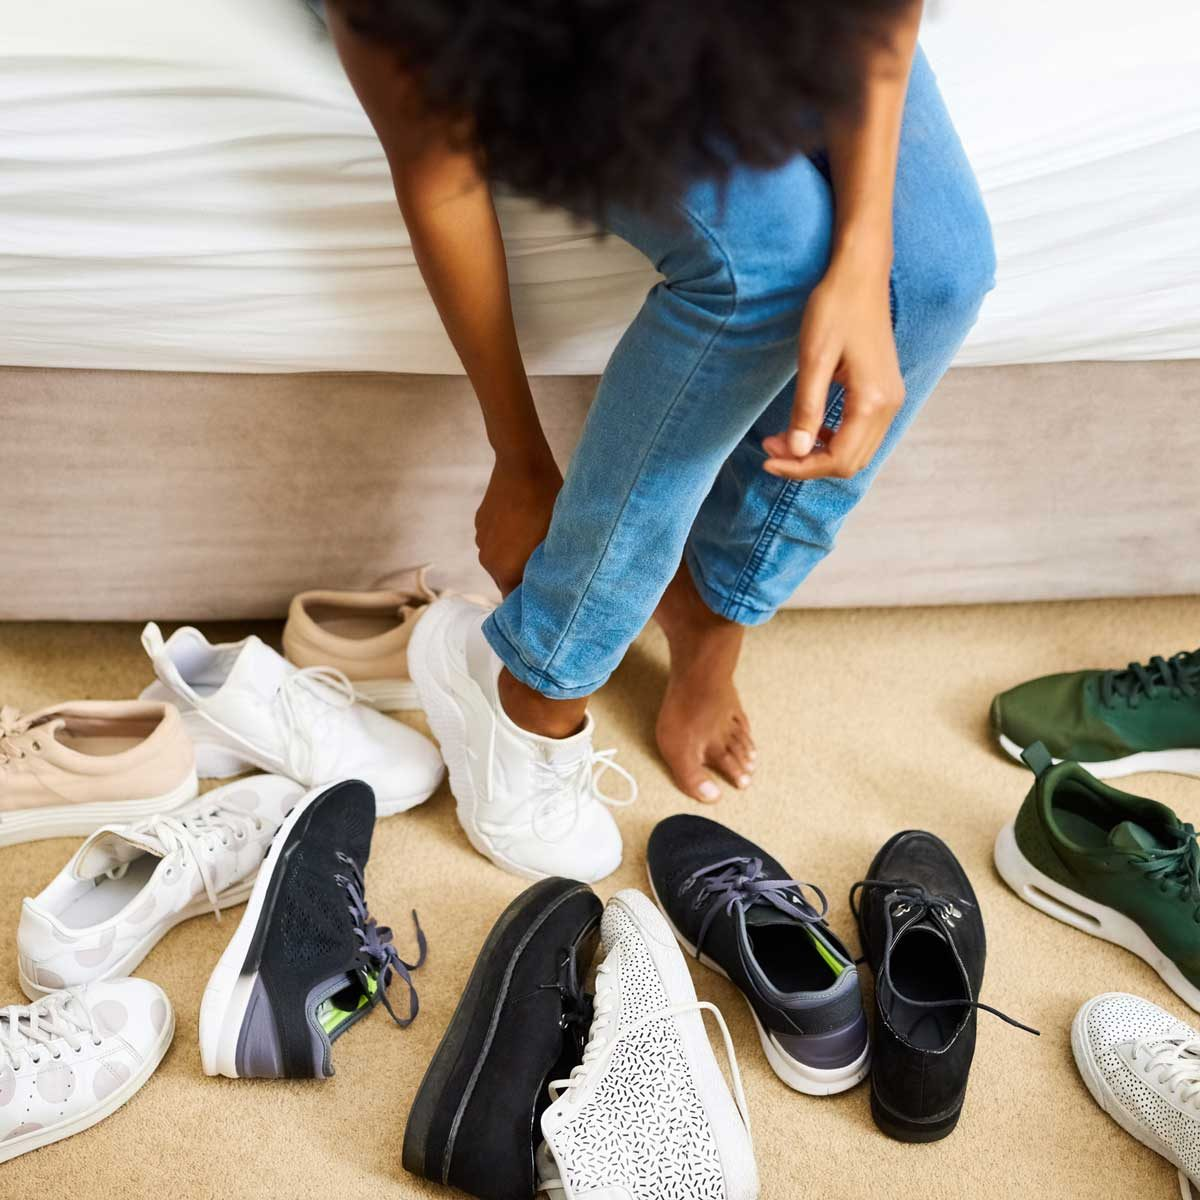 8 Best Shoe Organizers For Your Closet The Family Handyman